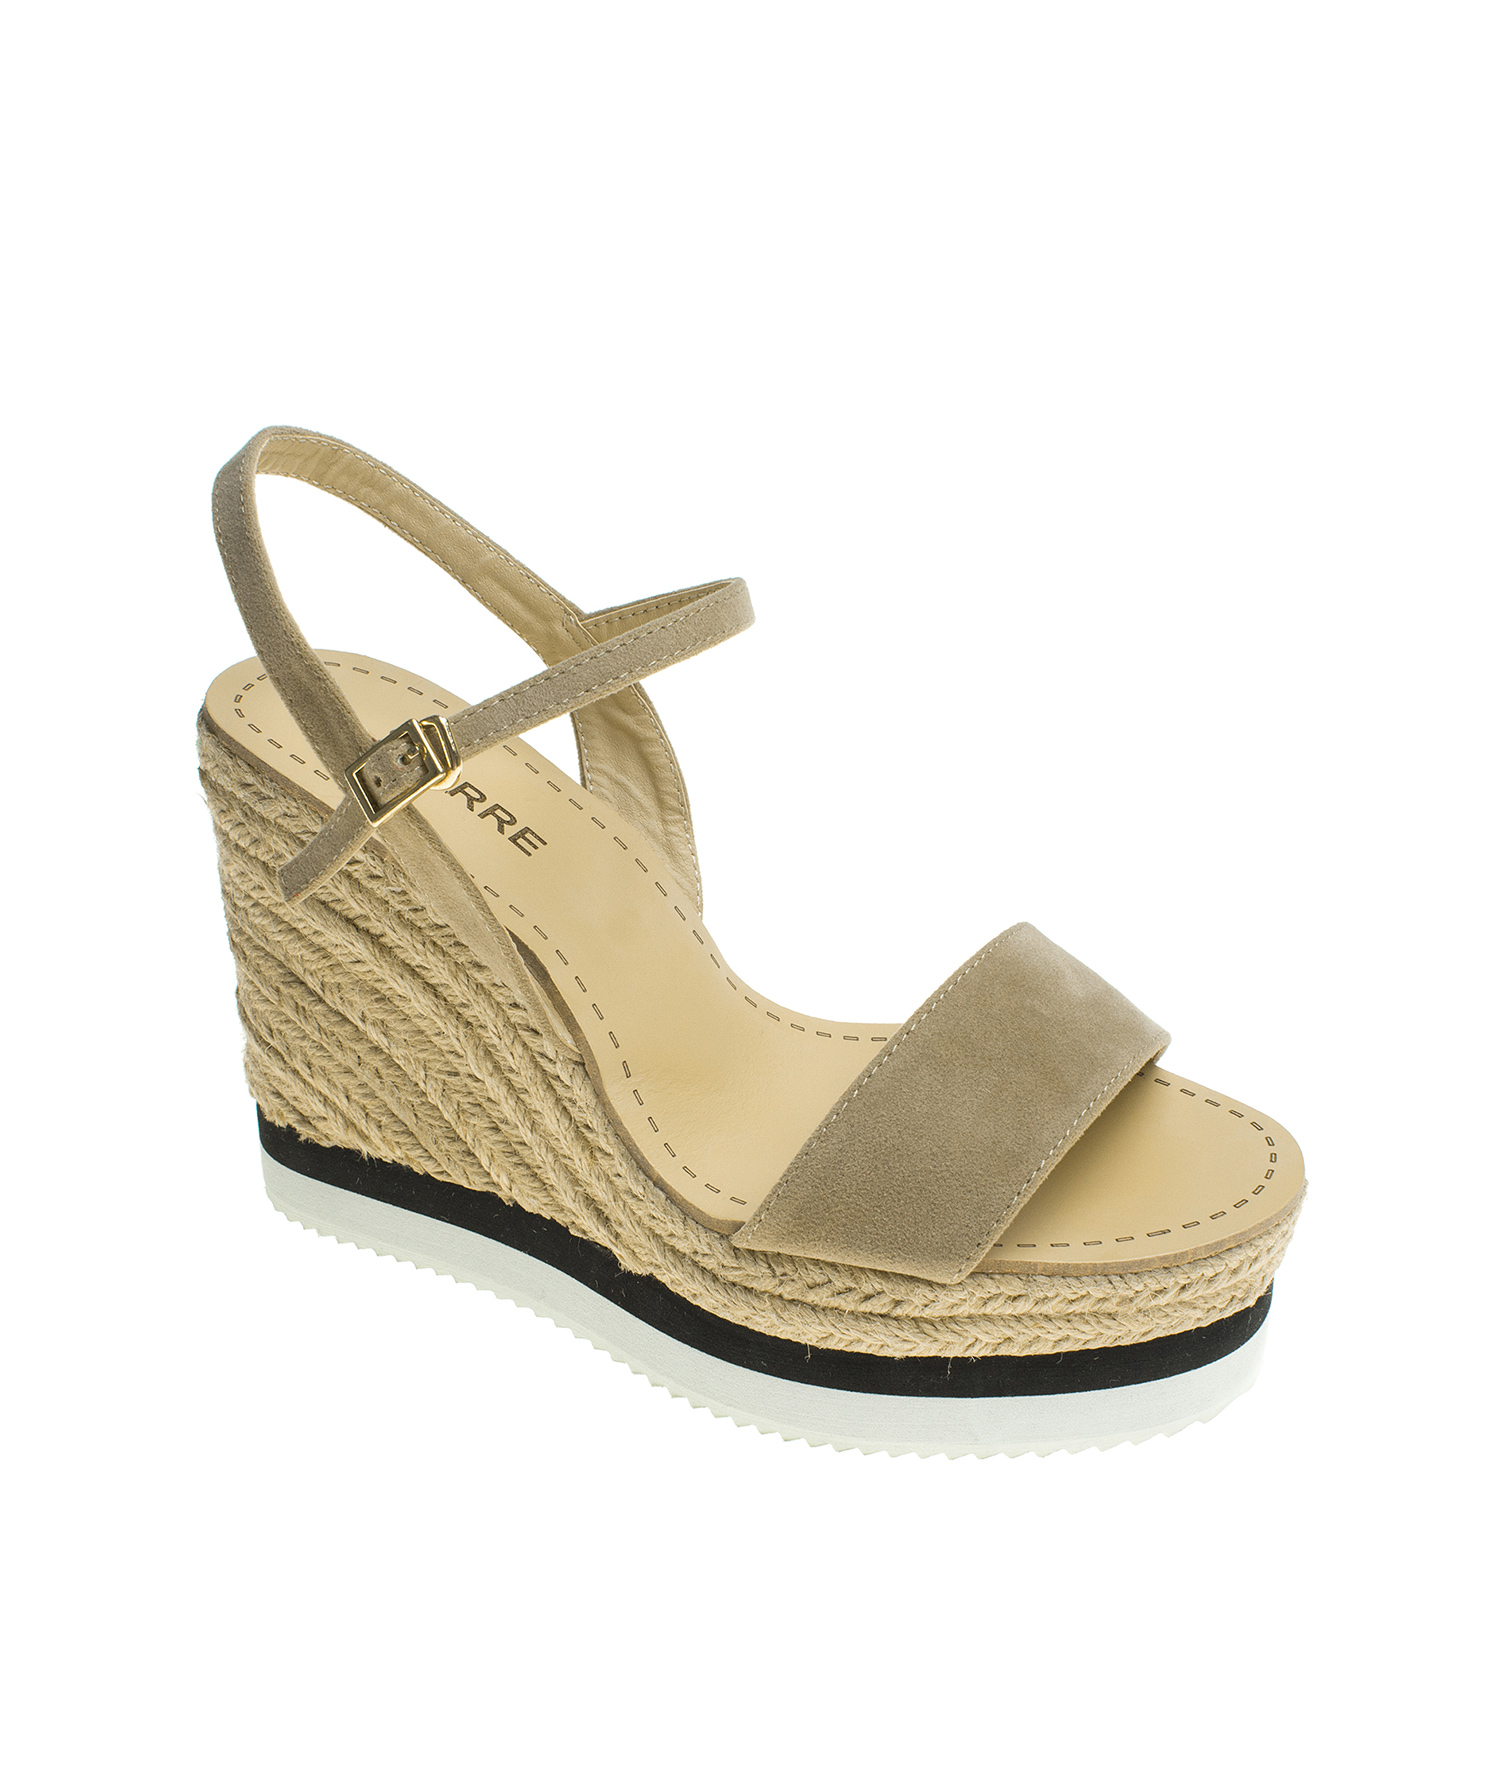 d61f9b0d92f Suede Ankle Strap Espadrille Wedge Sandal